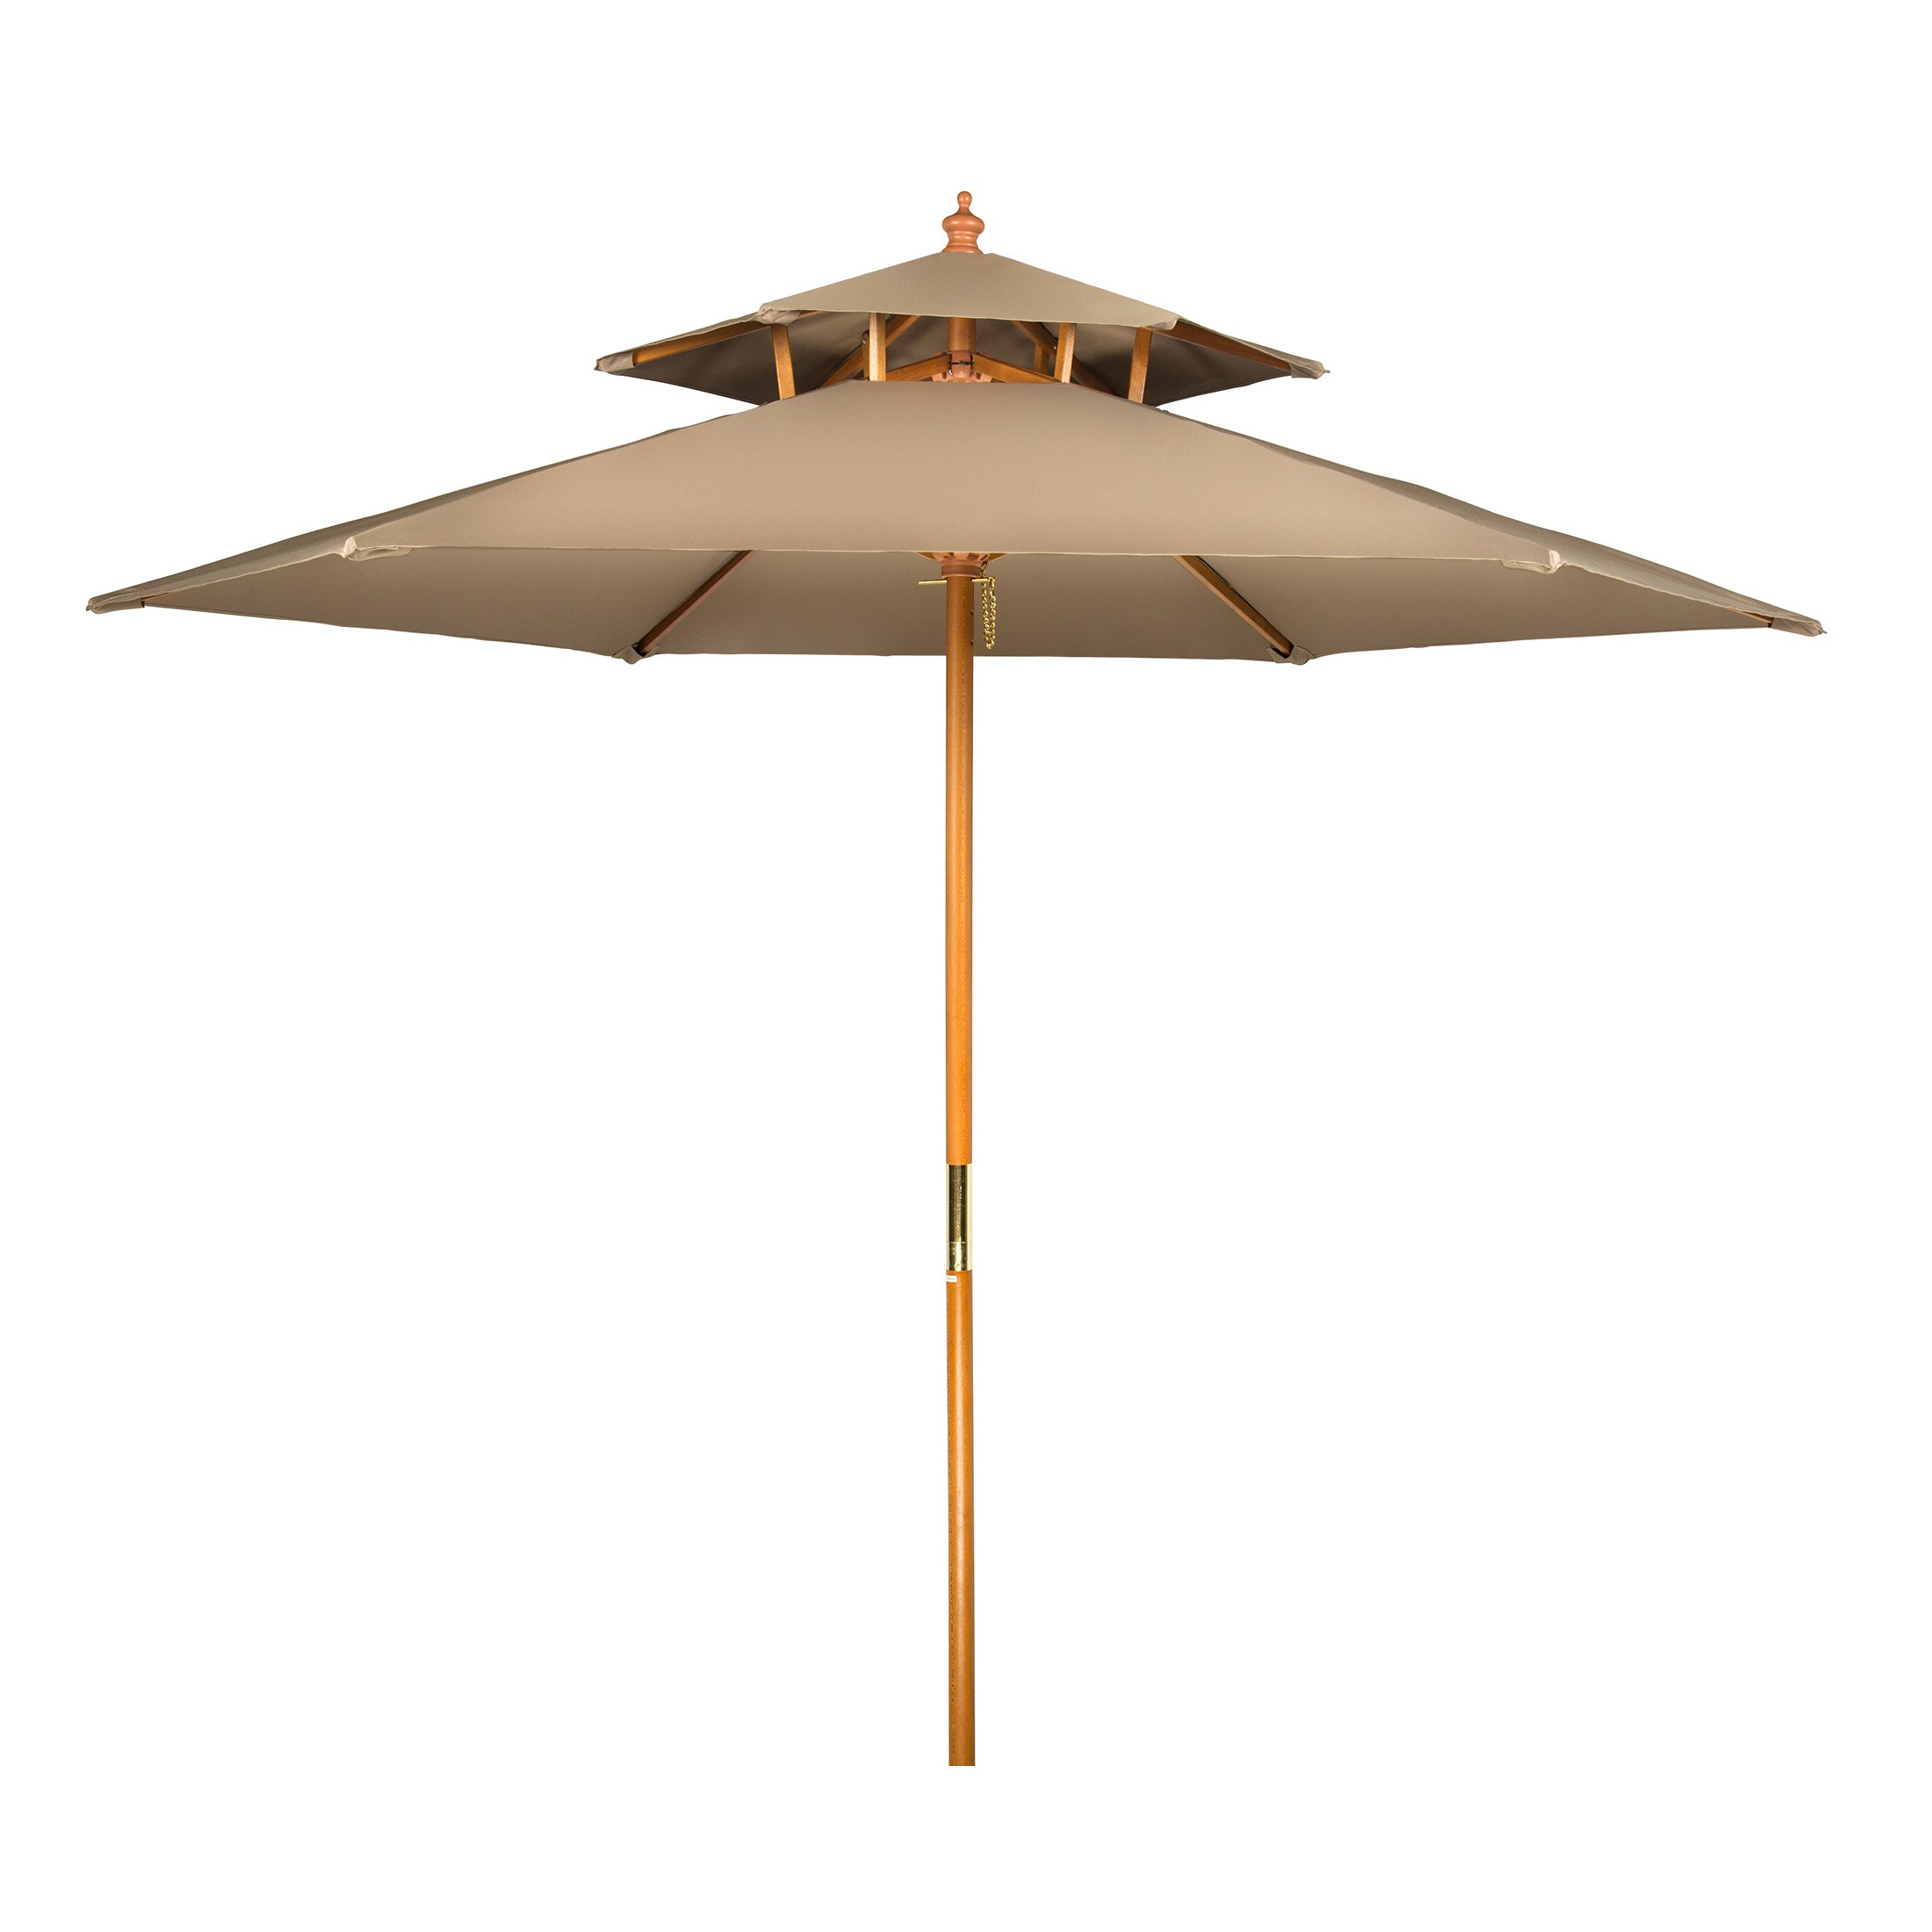 8u0027 Wood 2 Tier Pagoda Style Patio Umbrella By Trademark Innovations   Free  Shipping Today   Overstock   22612890